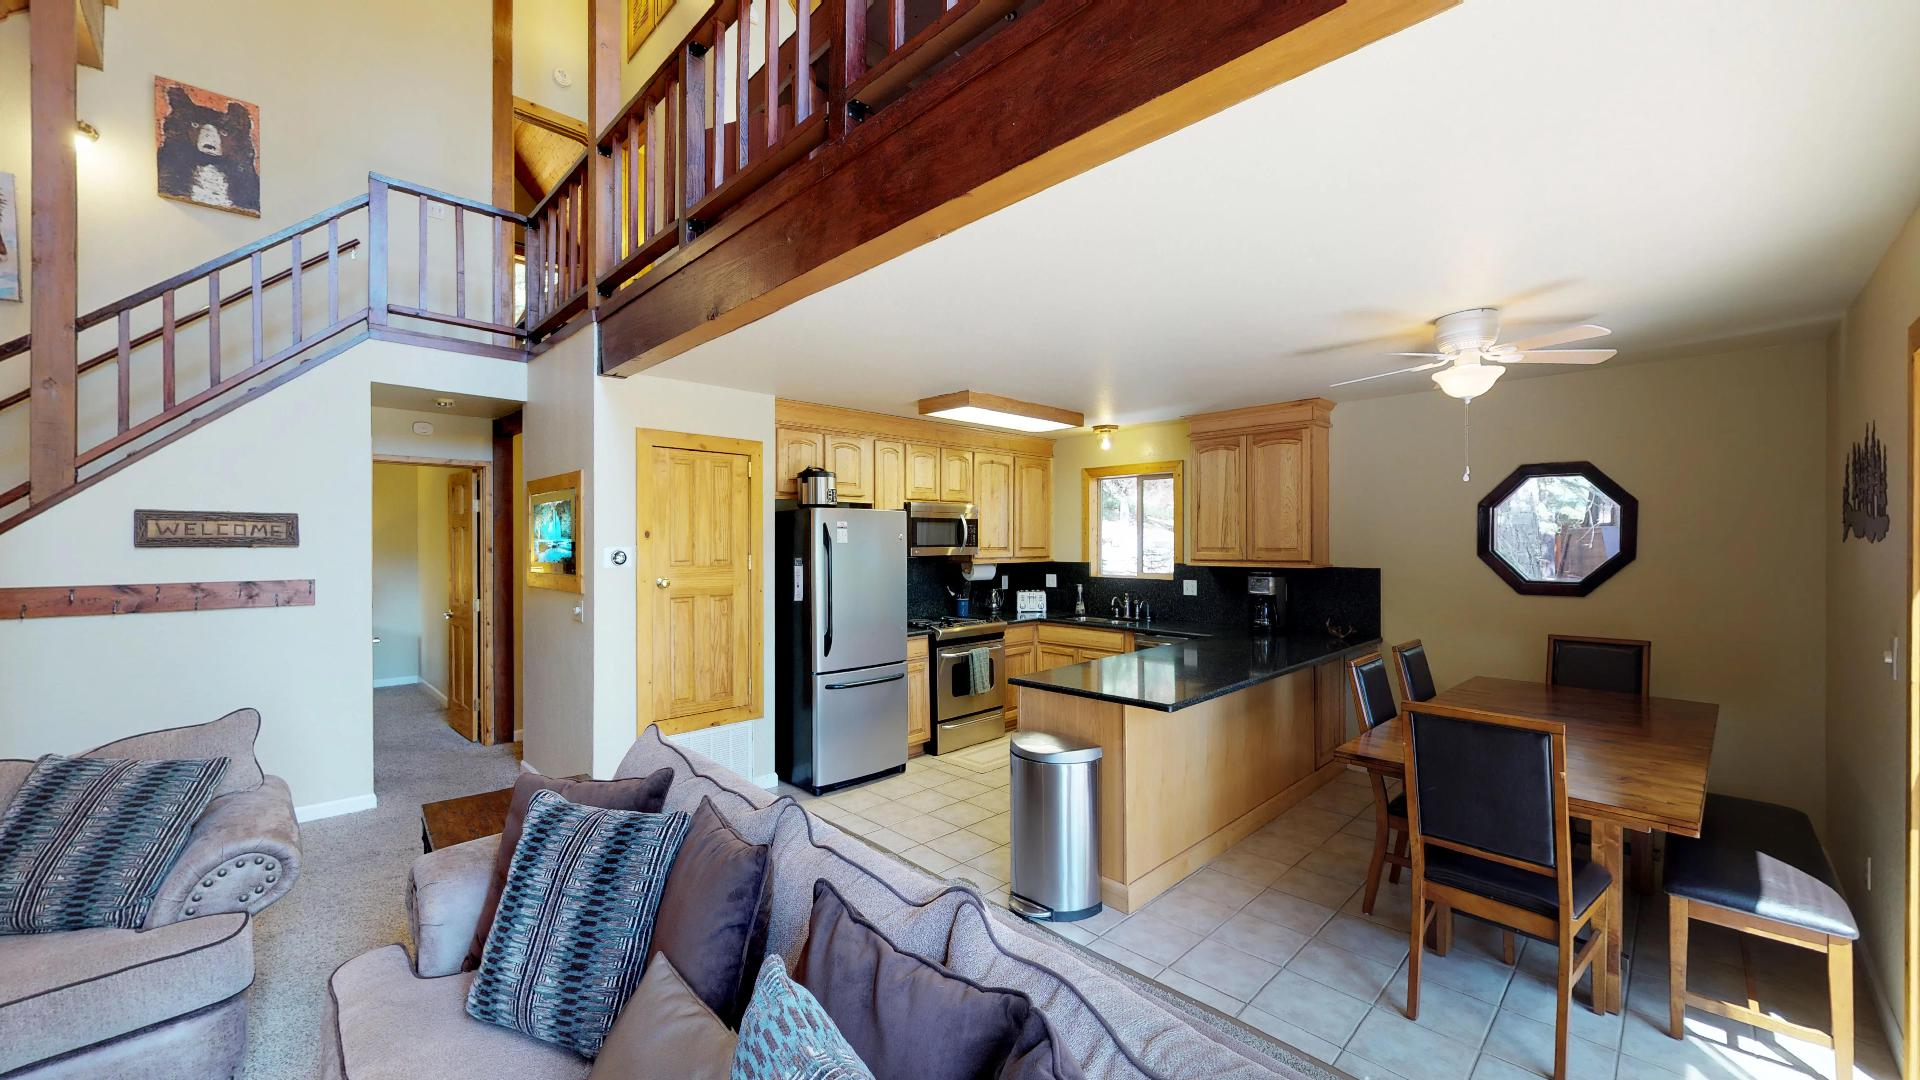 Kitchen and Dining Area in our Truckee Cabin Rental